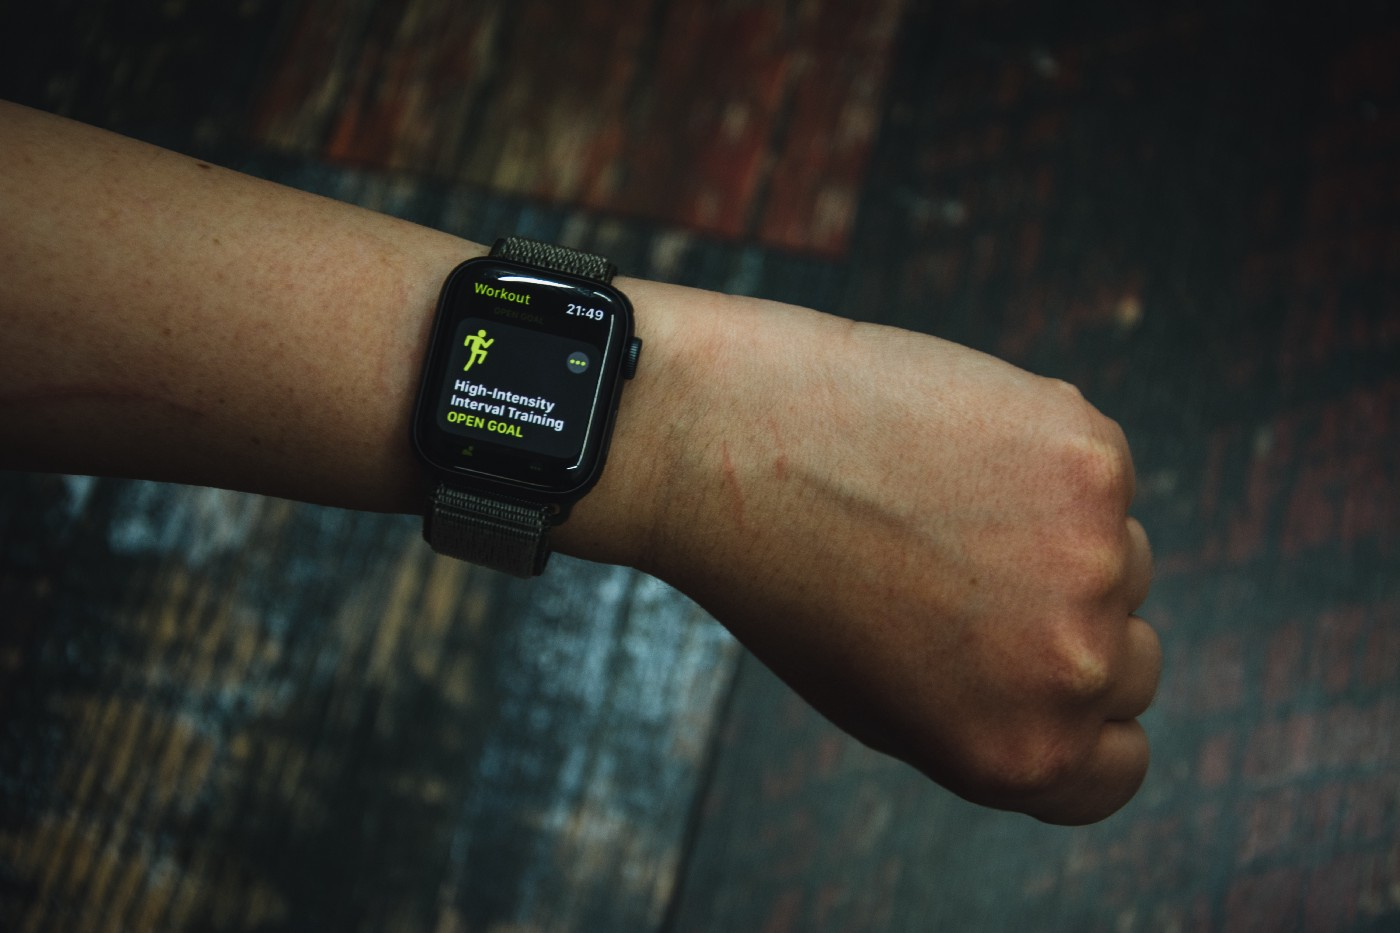 looking at a person's wrist with their smart watch showing it's about to track high intensity interval training